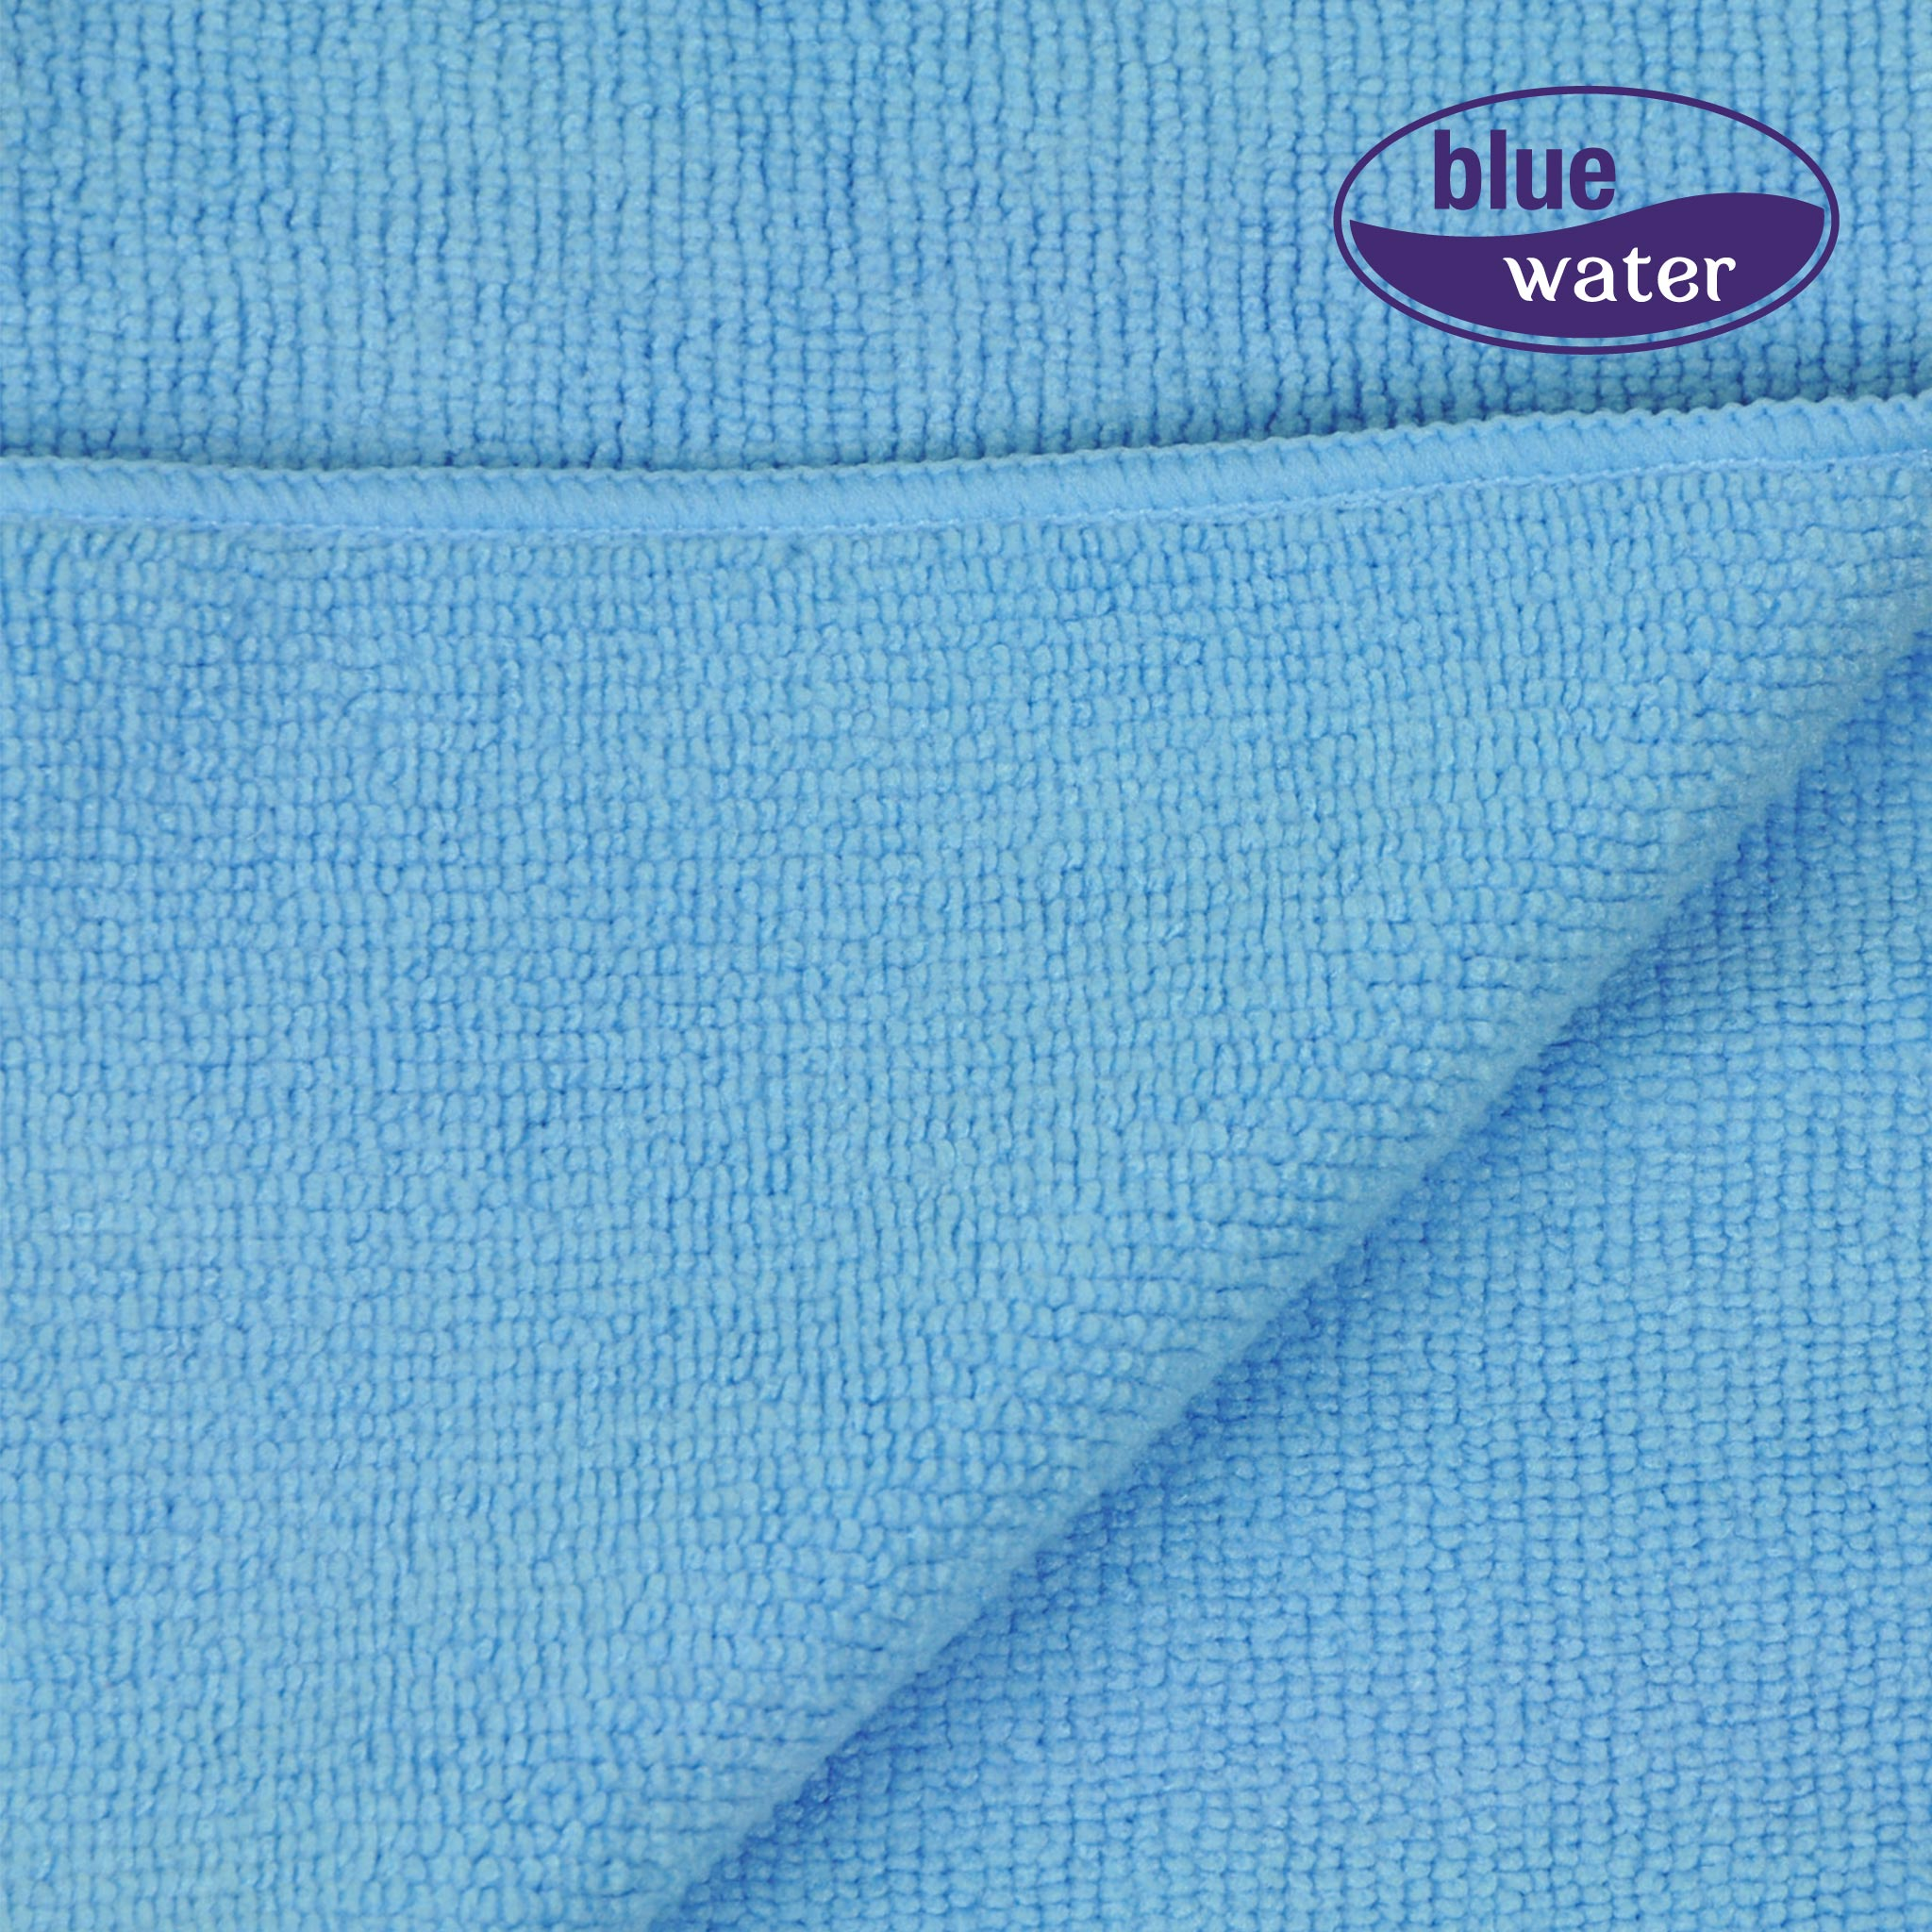 Bluewater Microfibre - Terry Weave